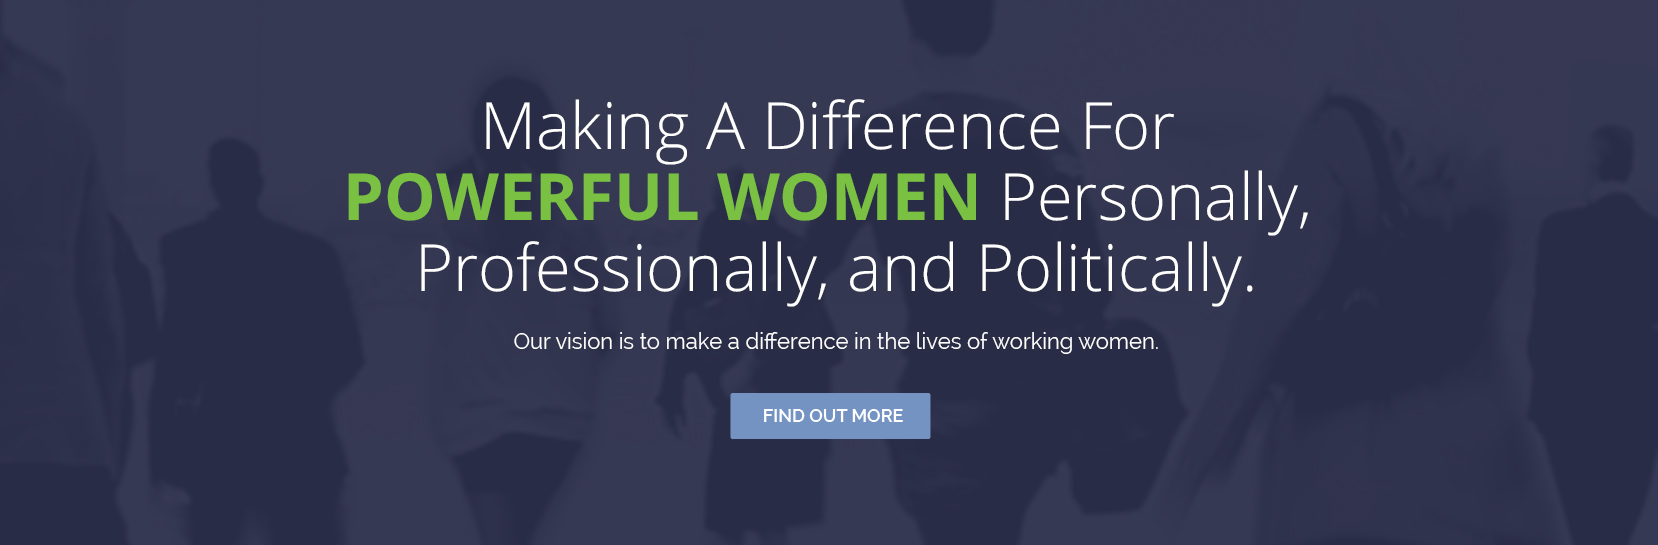 Making A Difference For powerful women Personally, Professionally, and Politically - NYSW Buffalo Niagara Chapter